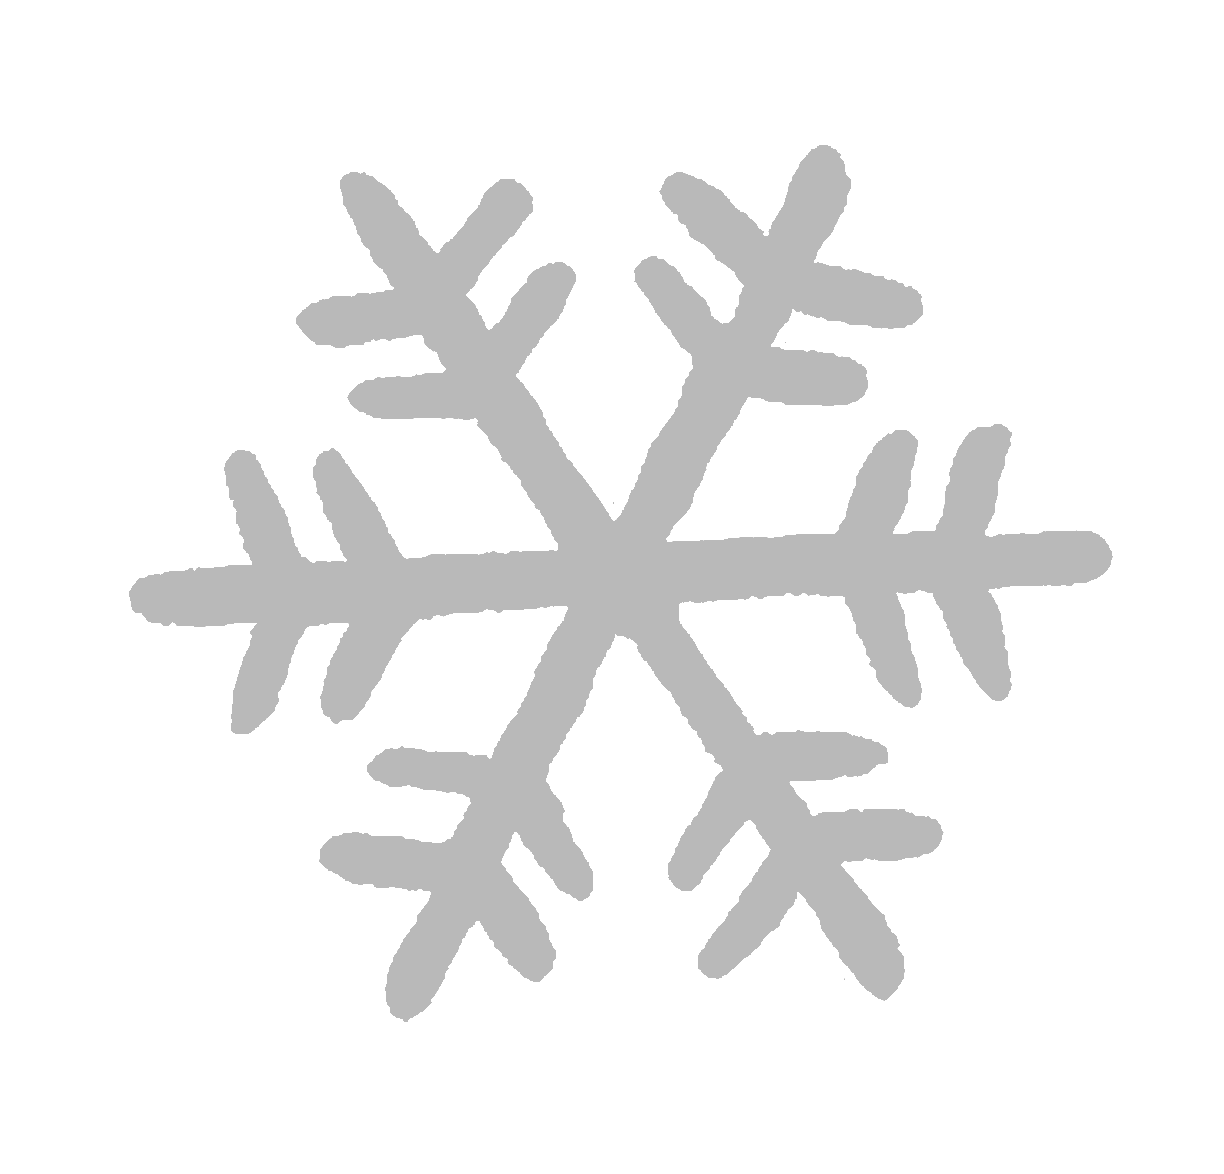 Snowflake label clipart clip art library download The Graphics Monarch: Digital Snowflake Silhouette Downloads ... clip art library download